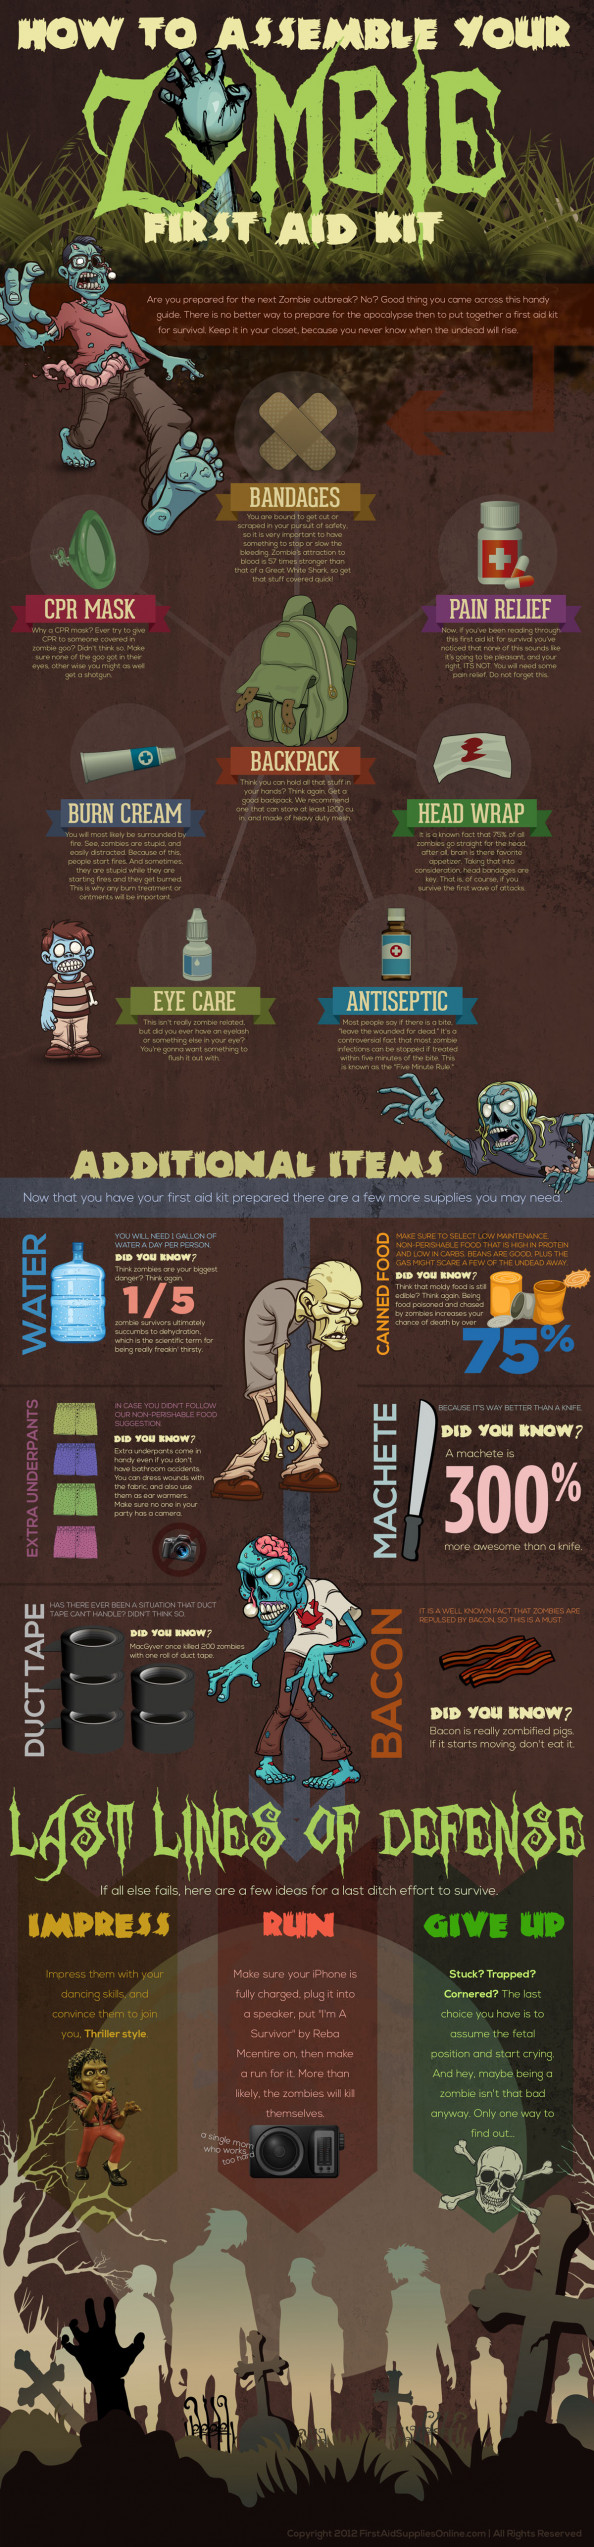 How To Assemble Your Zombie First Aid Kit Infographic